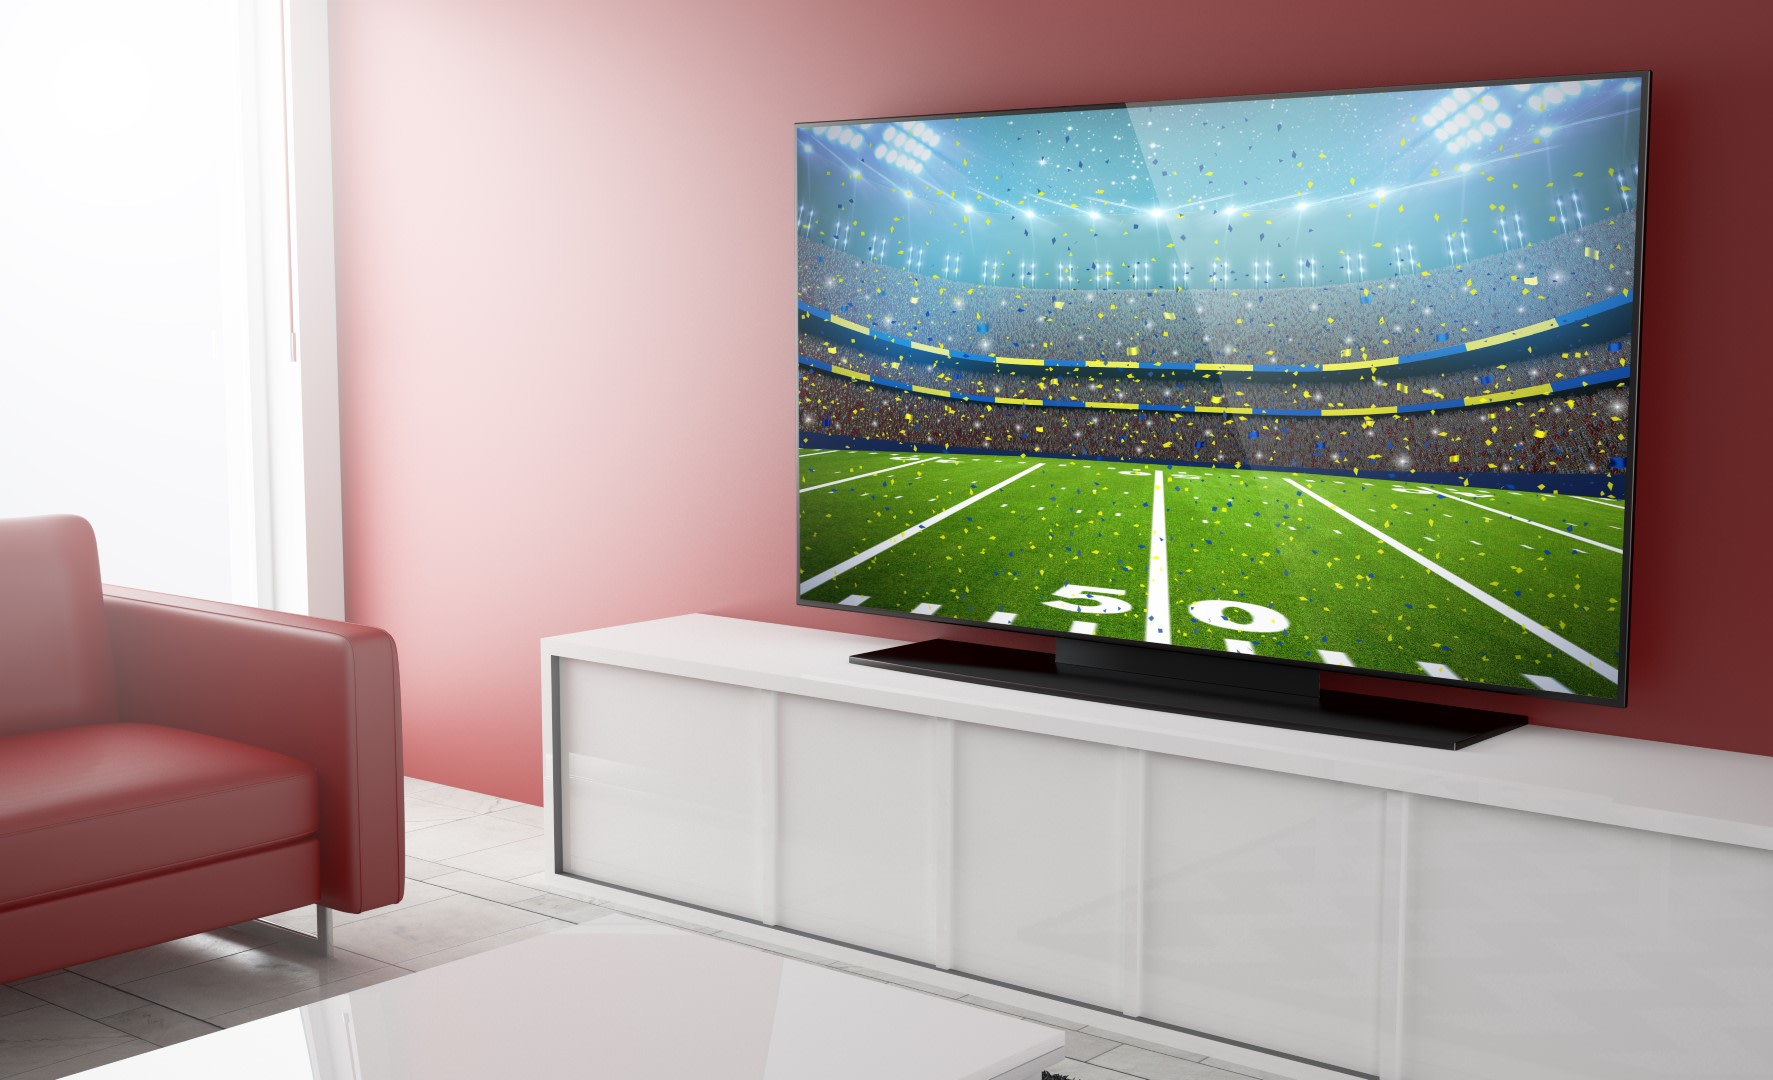 An image related to Best 120Hz Android Smart TVs